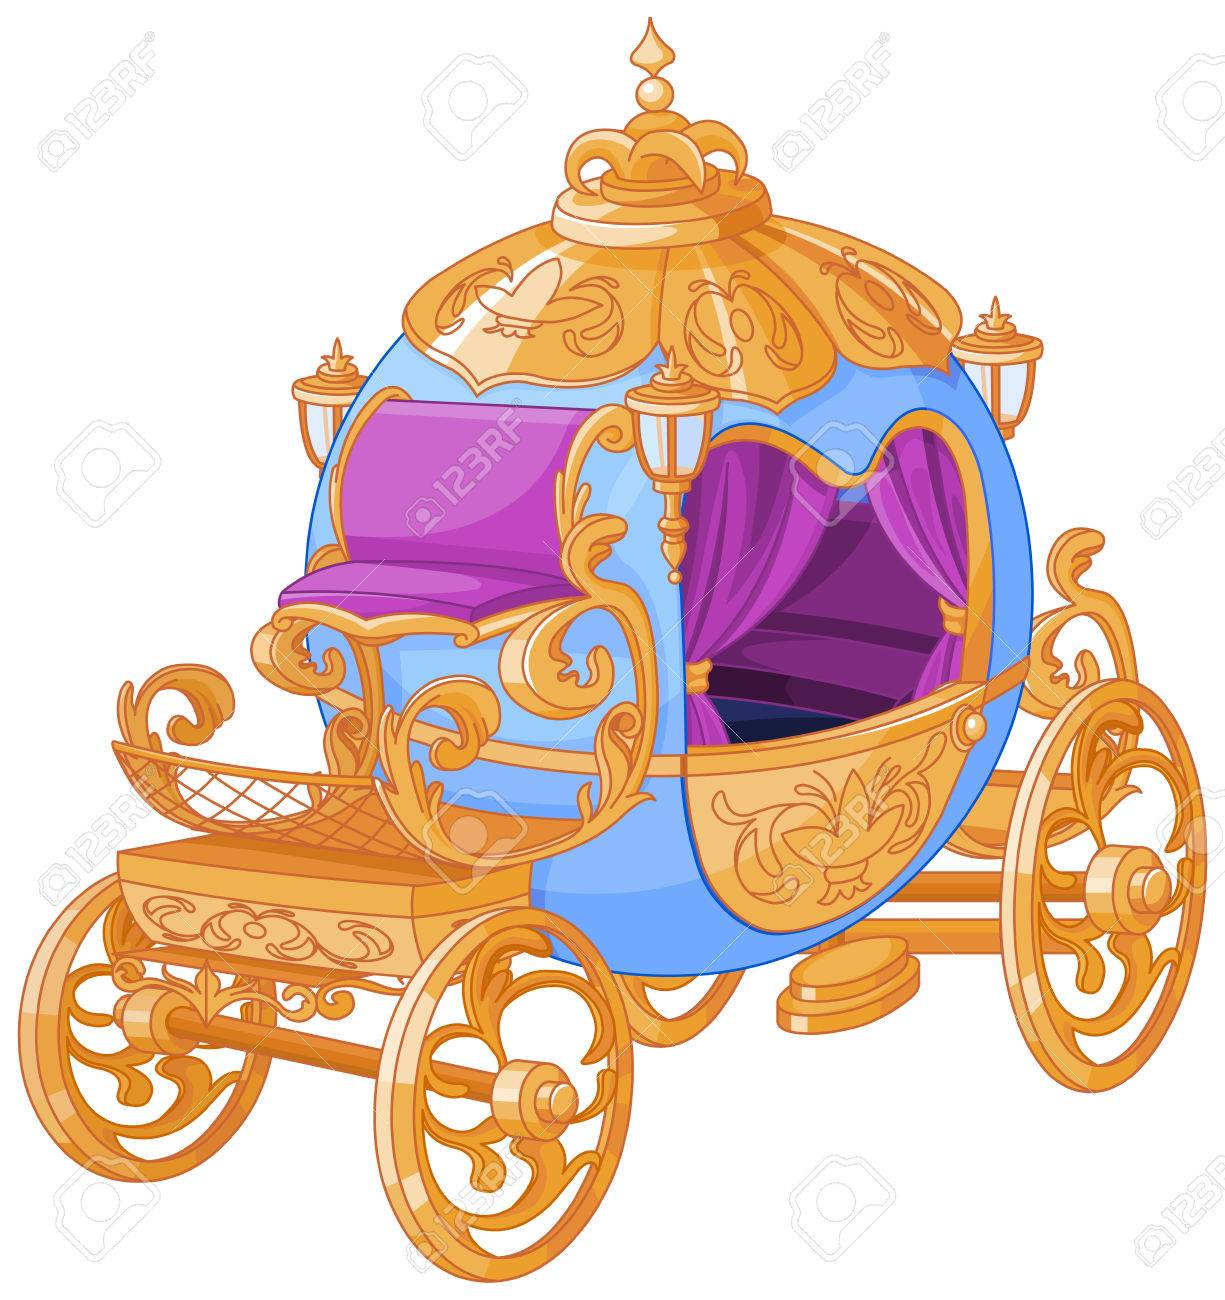 hight resolution of cinderella fairy tale carriage stock vector 69930810